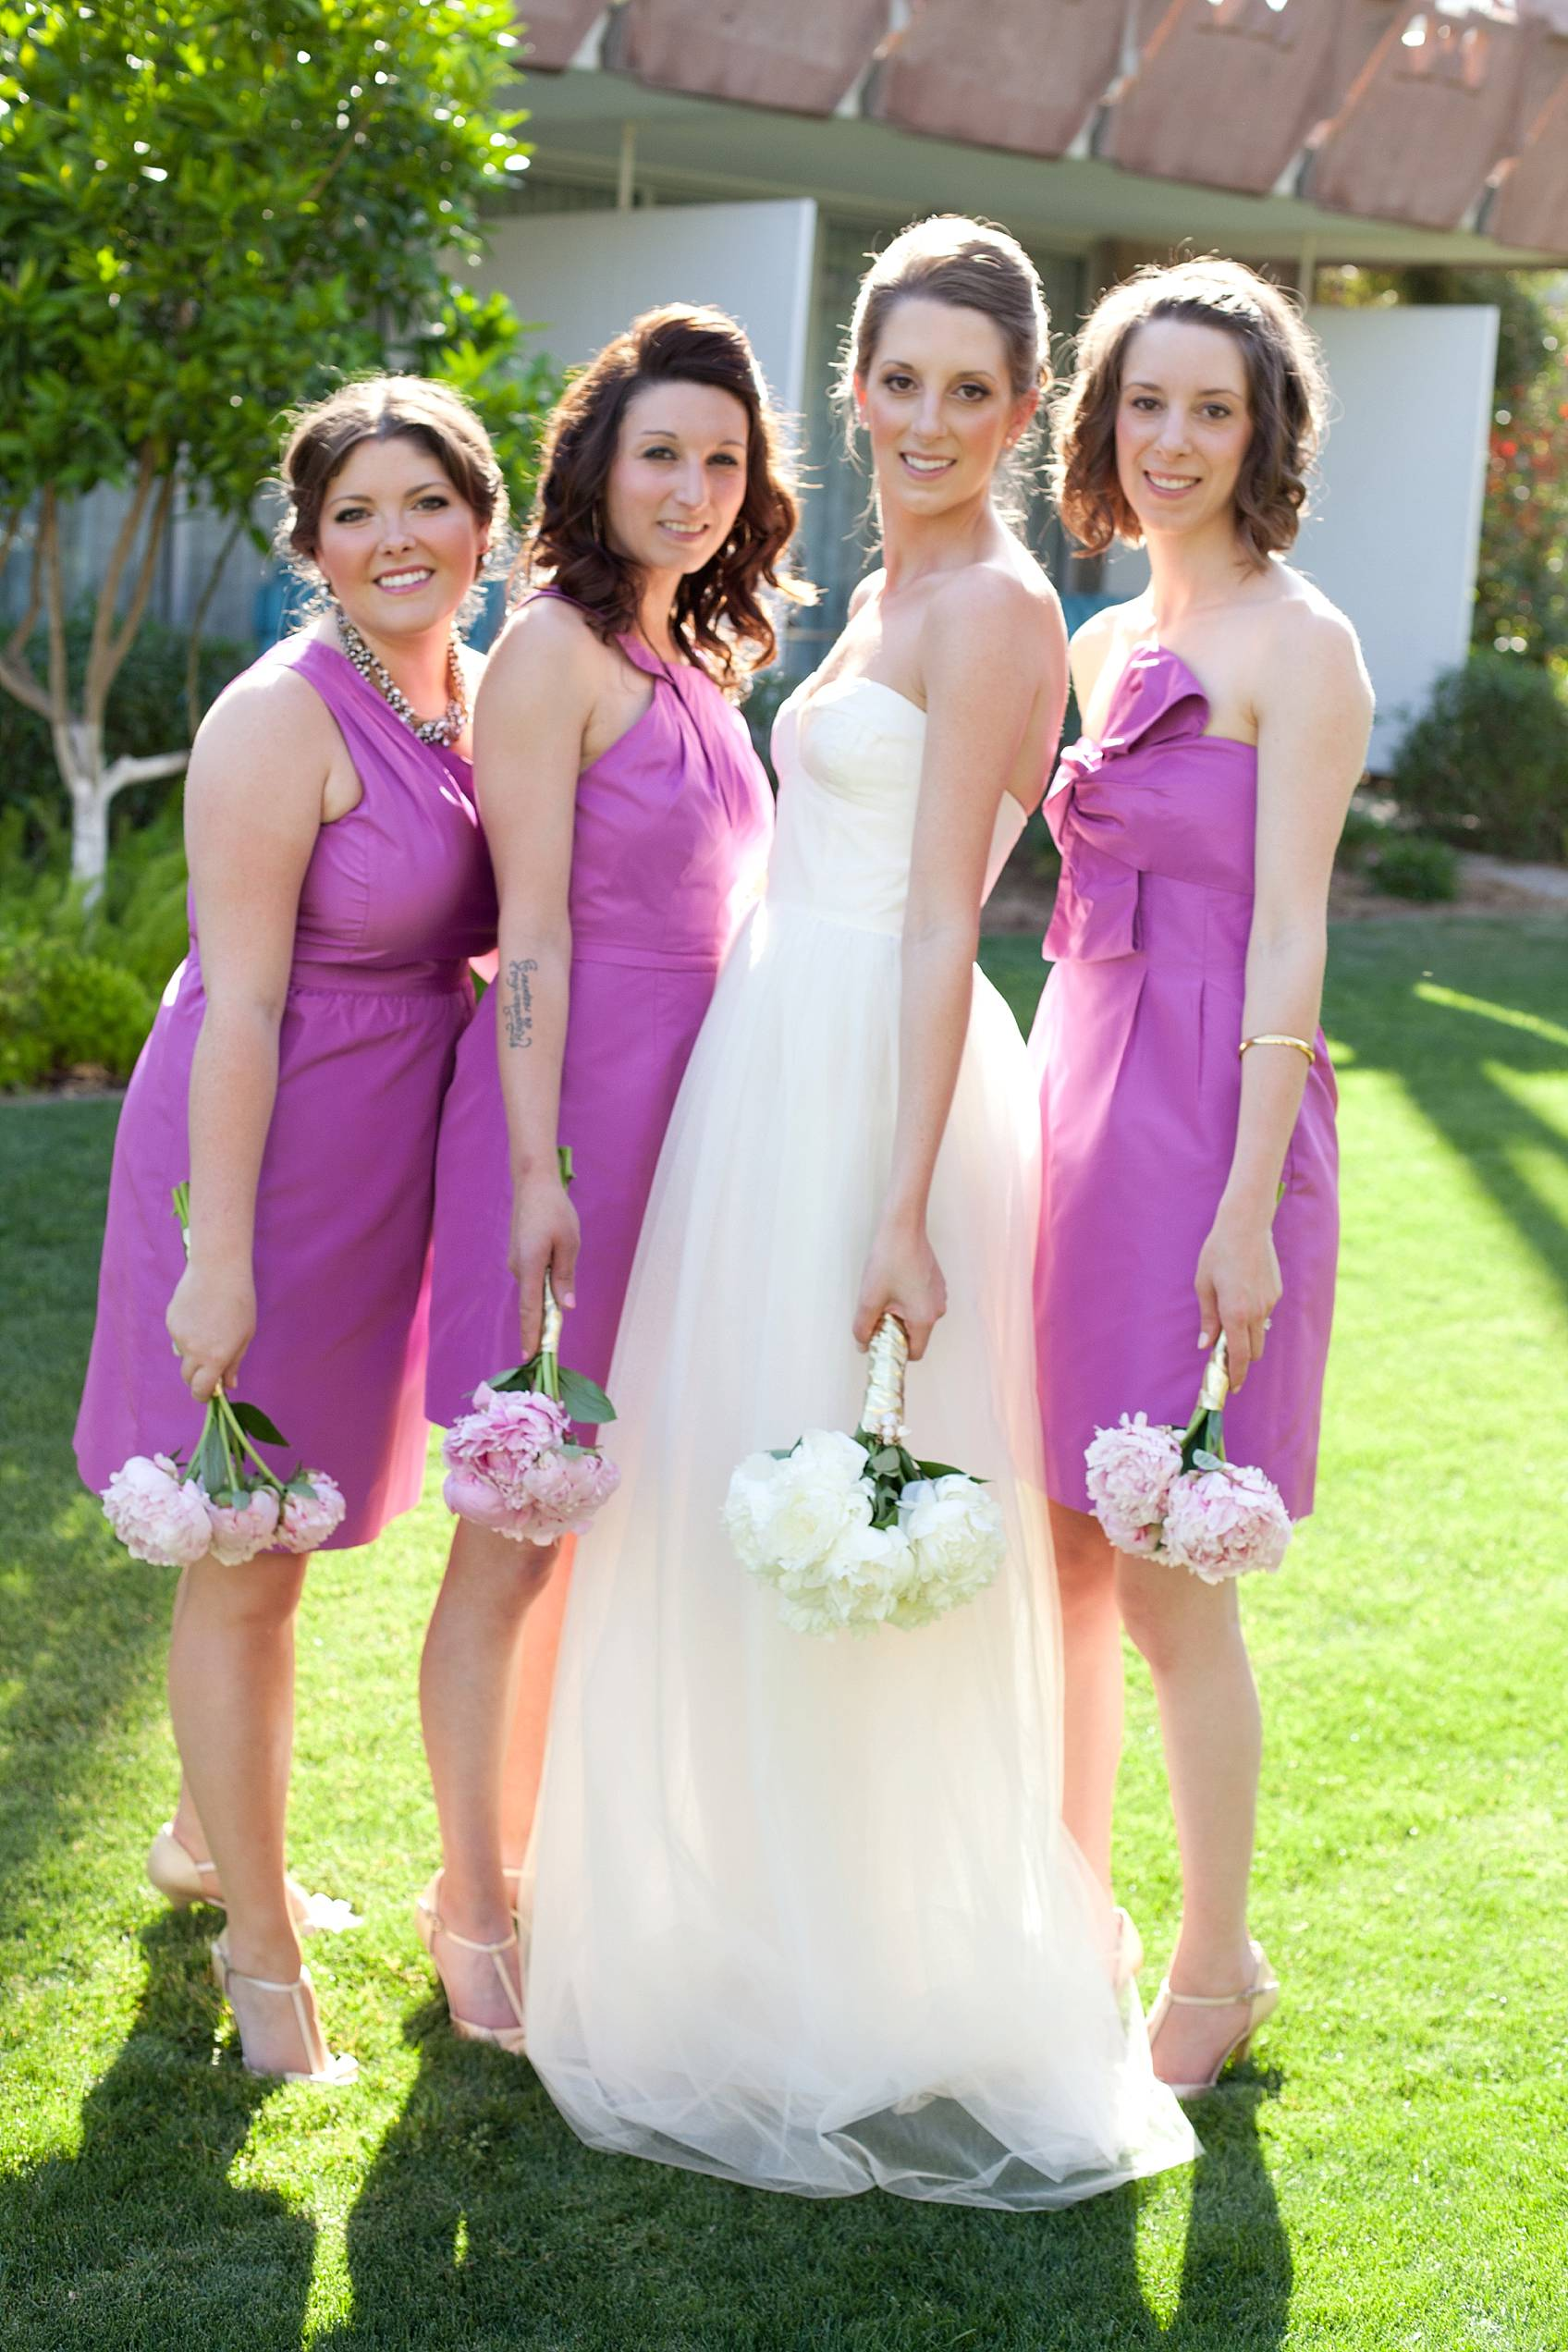 bride in j.crew bridal dress with bridal party walking with sun behind them